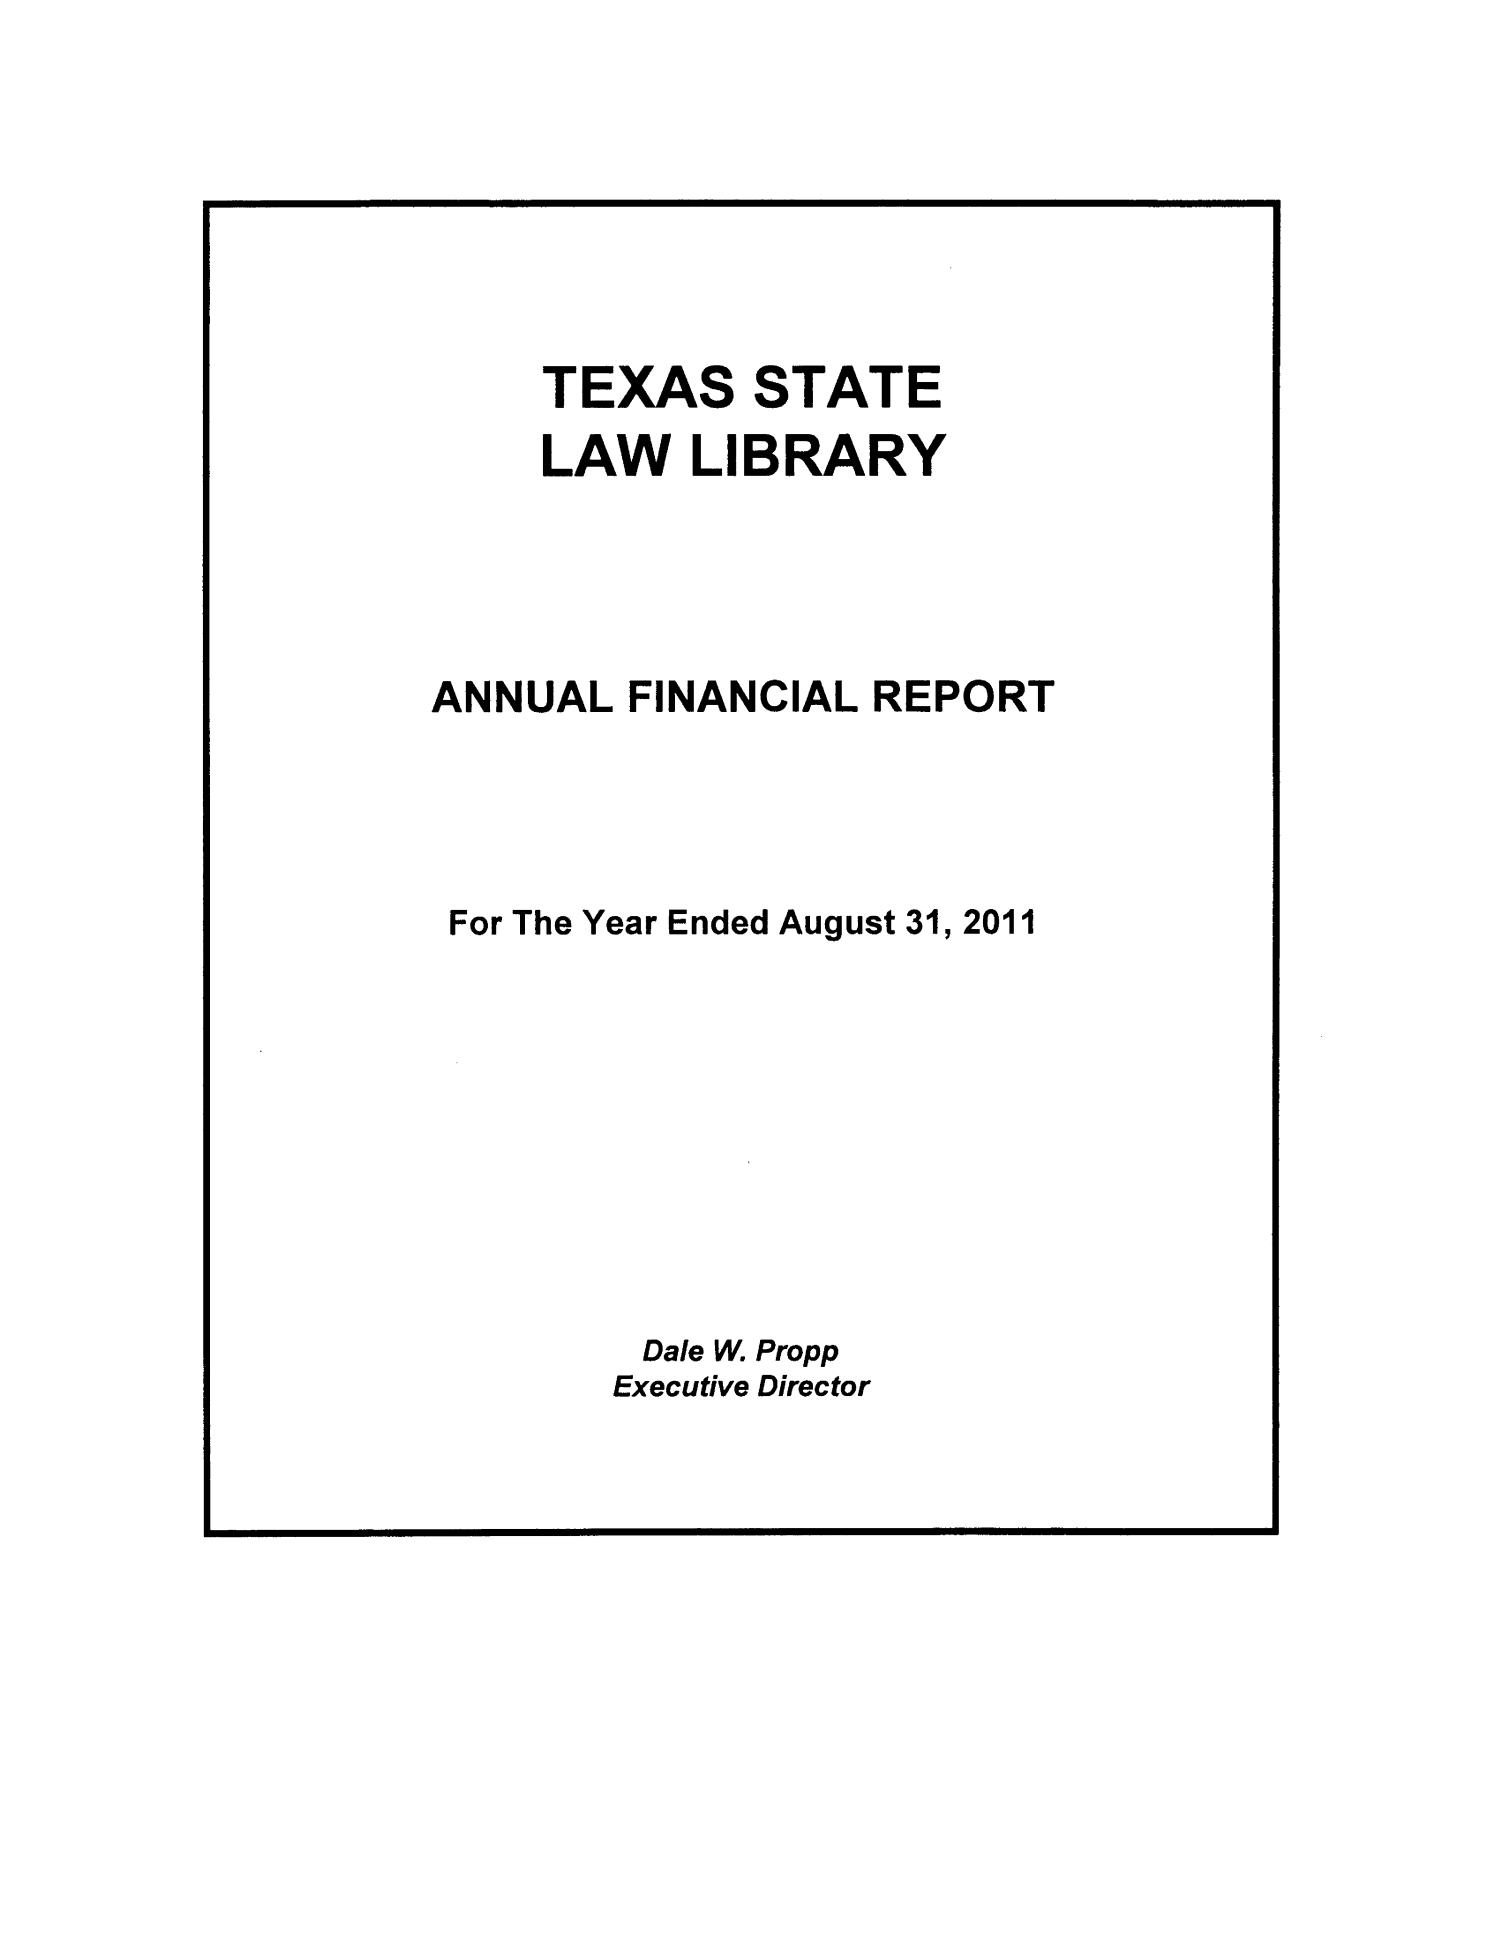 texas state law library annual financial report page title texas state law library annual financial report 2011 page title page